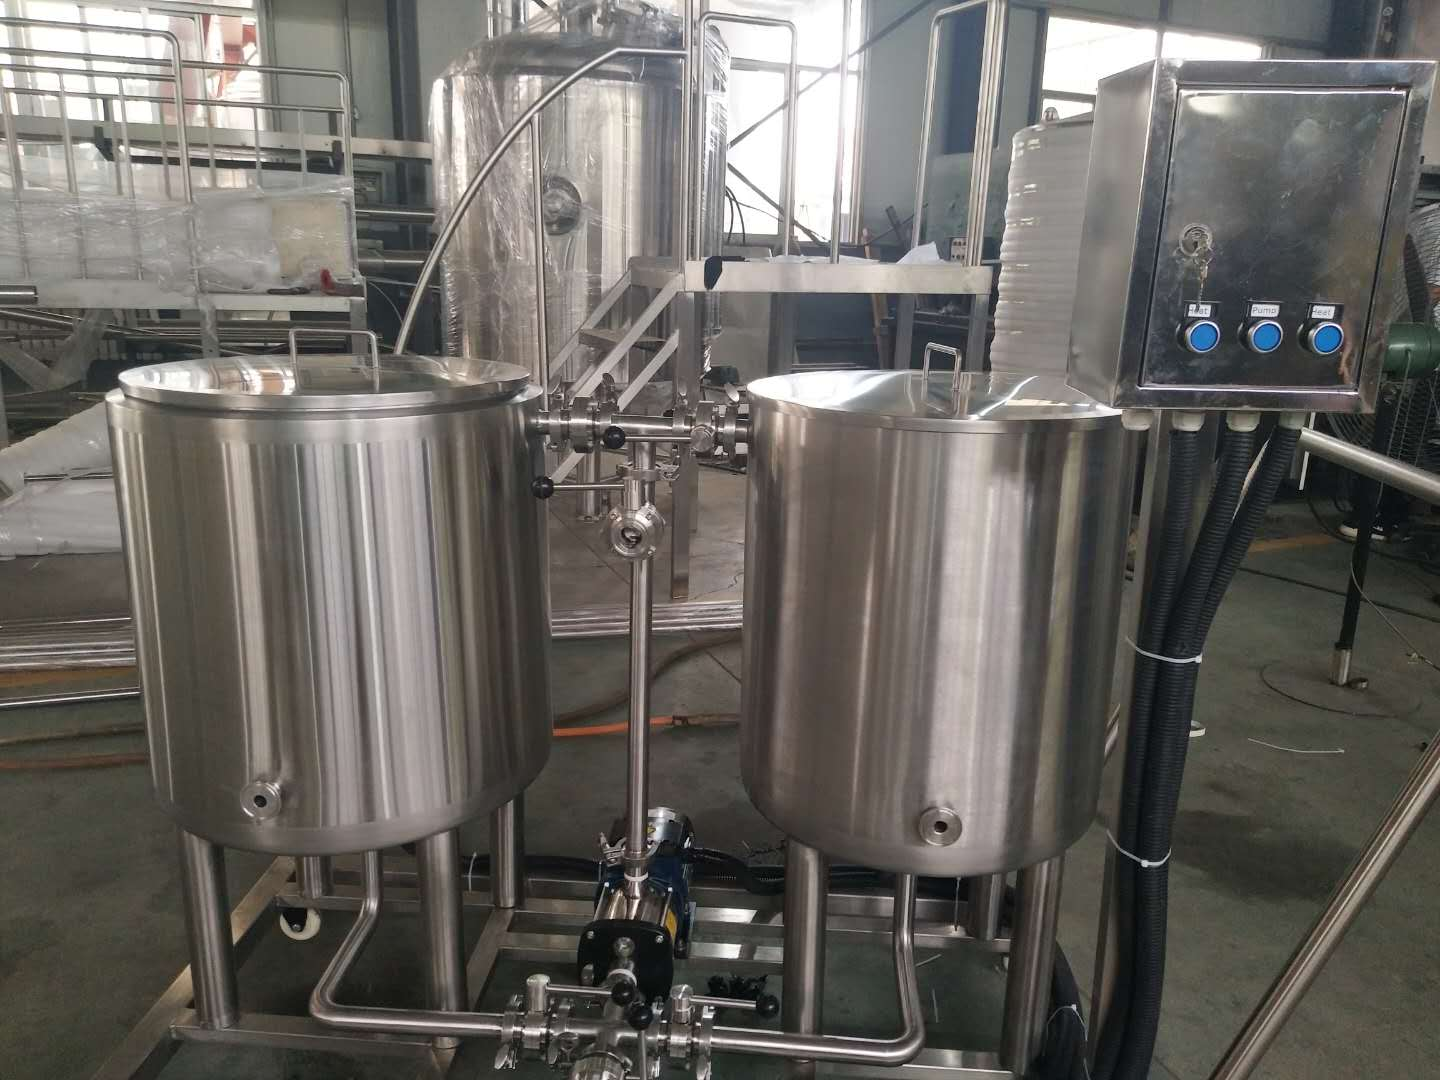 Peru small microbrewery equipment of stainless steel from China factory supplier W1